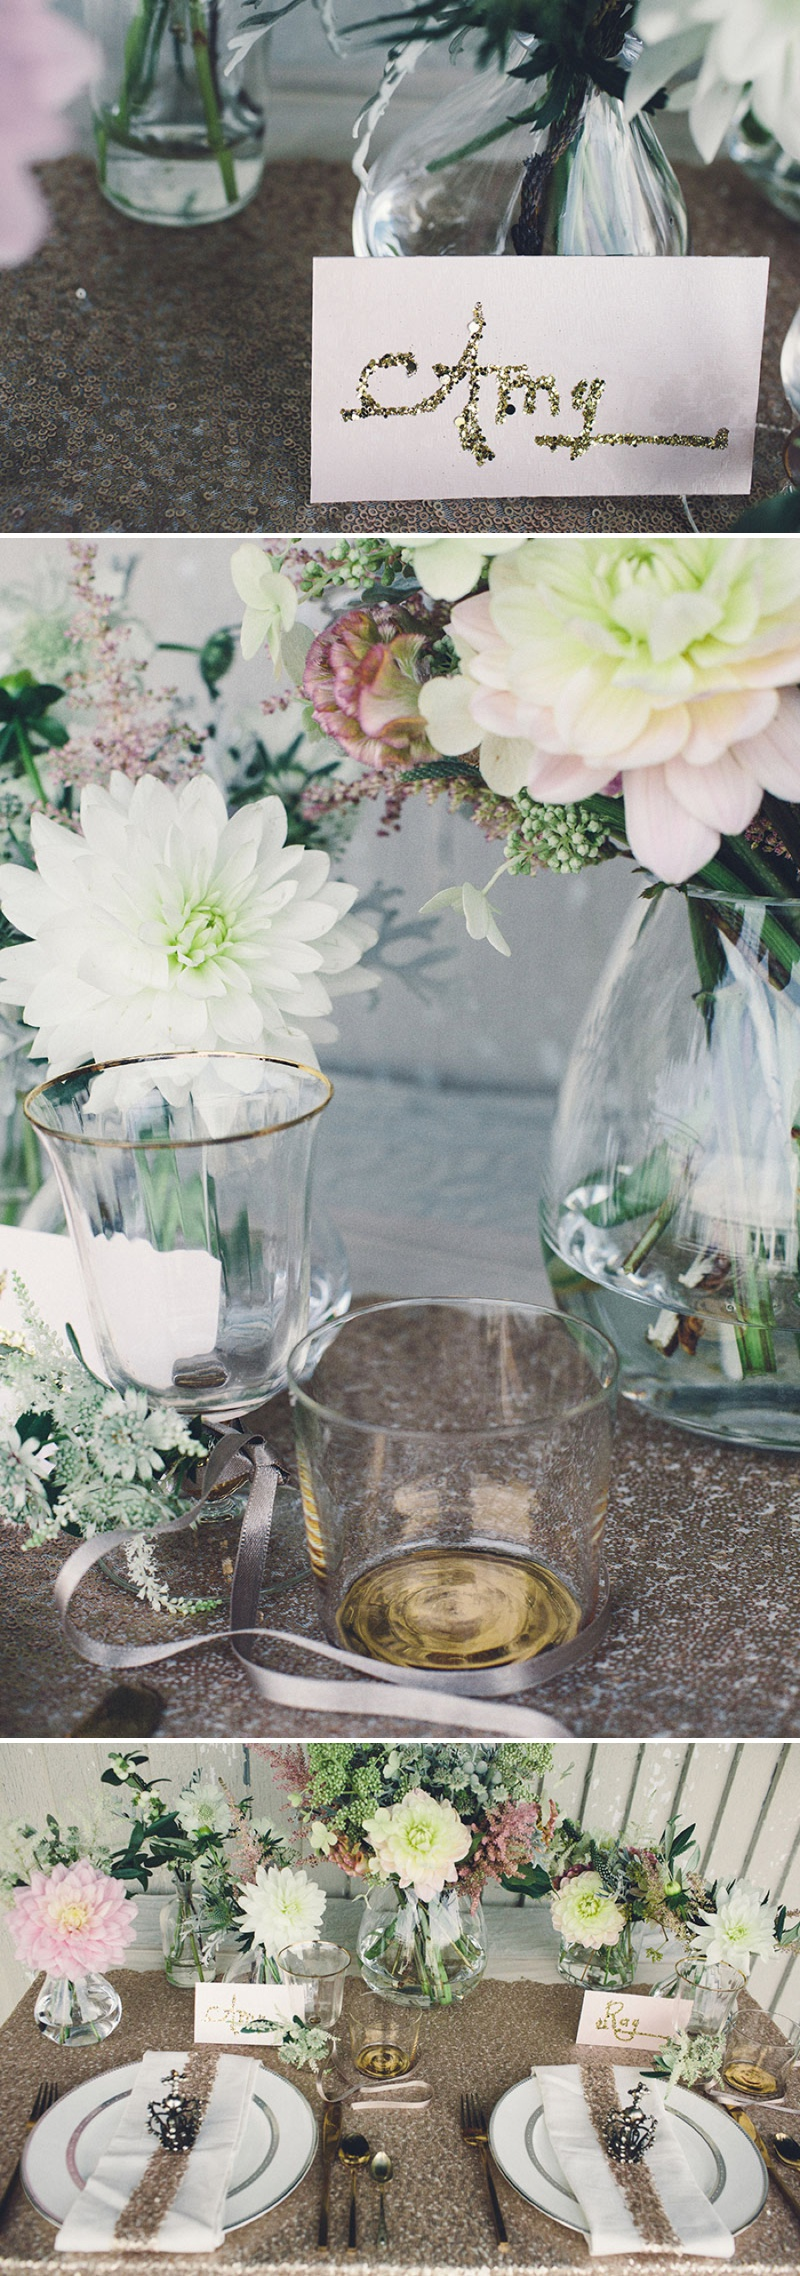 A Coastal Wedding Decor Inspiration Shoot From Rock My Wedding Featuring A Rustic Olive Leaf Table Centrepiece And A Luxury Sequinned Wedding Tablescape._0007